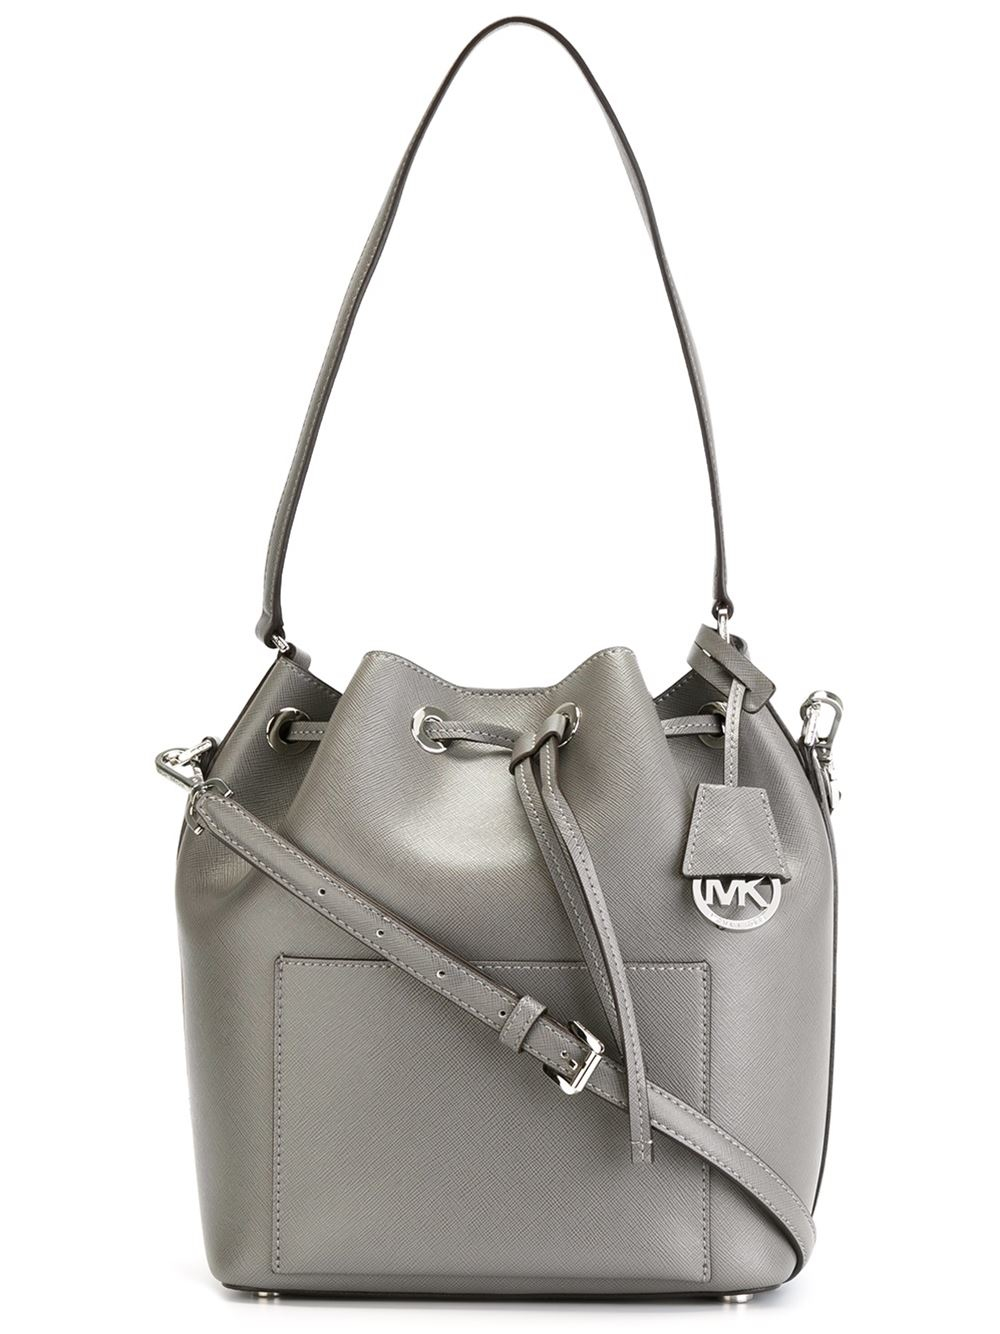 Lyst - MICHAEL Michael Kors Greenwich Bucket Bag in Gray 062f763ea569f